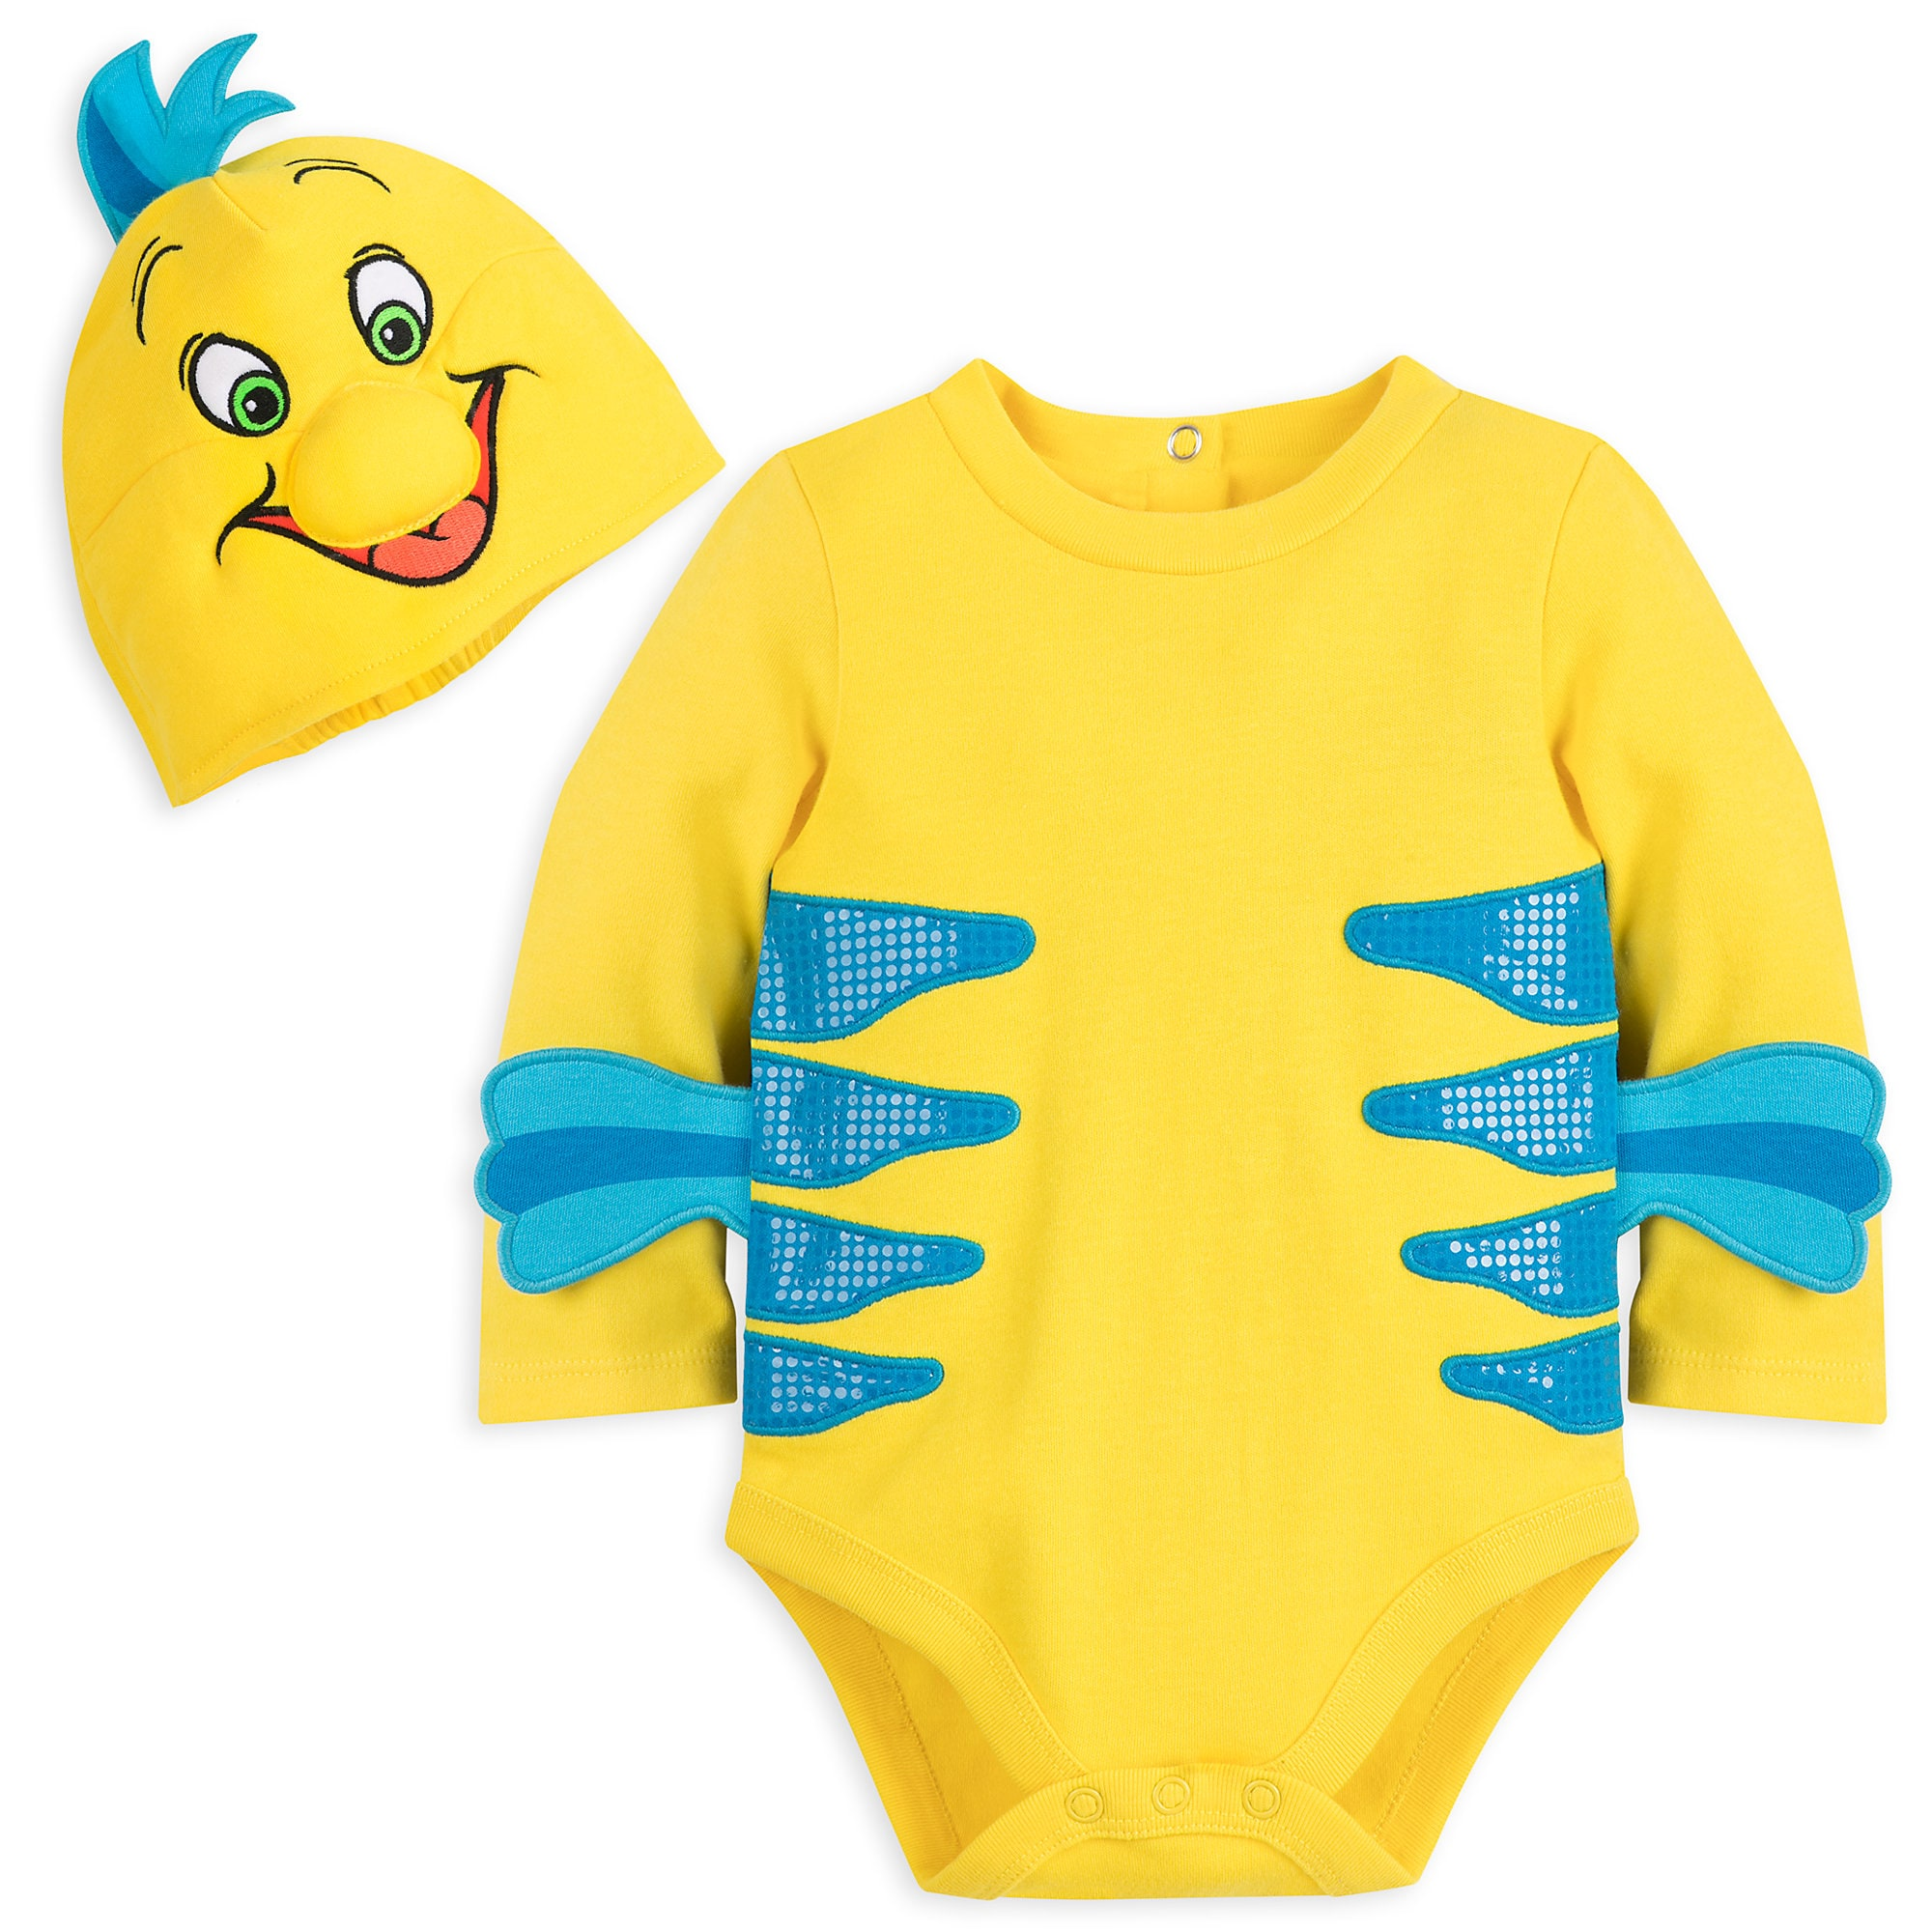 Flounder Costume Bodysuit for Baby - The Little Mermaid  sc 1 st  shopDisney : flounder infant costume  - Germanpascual.Com